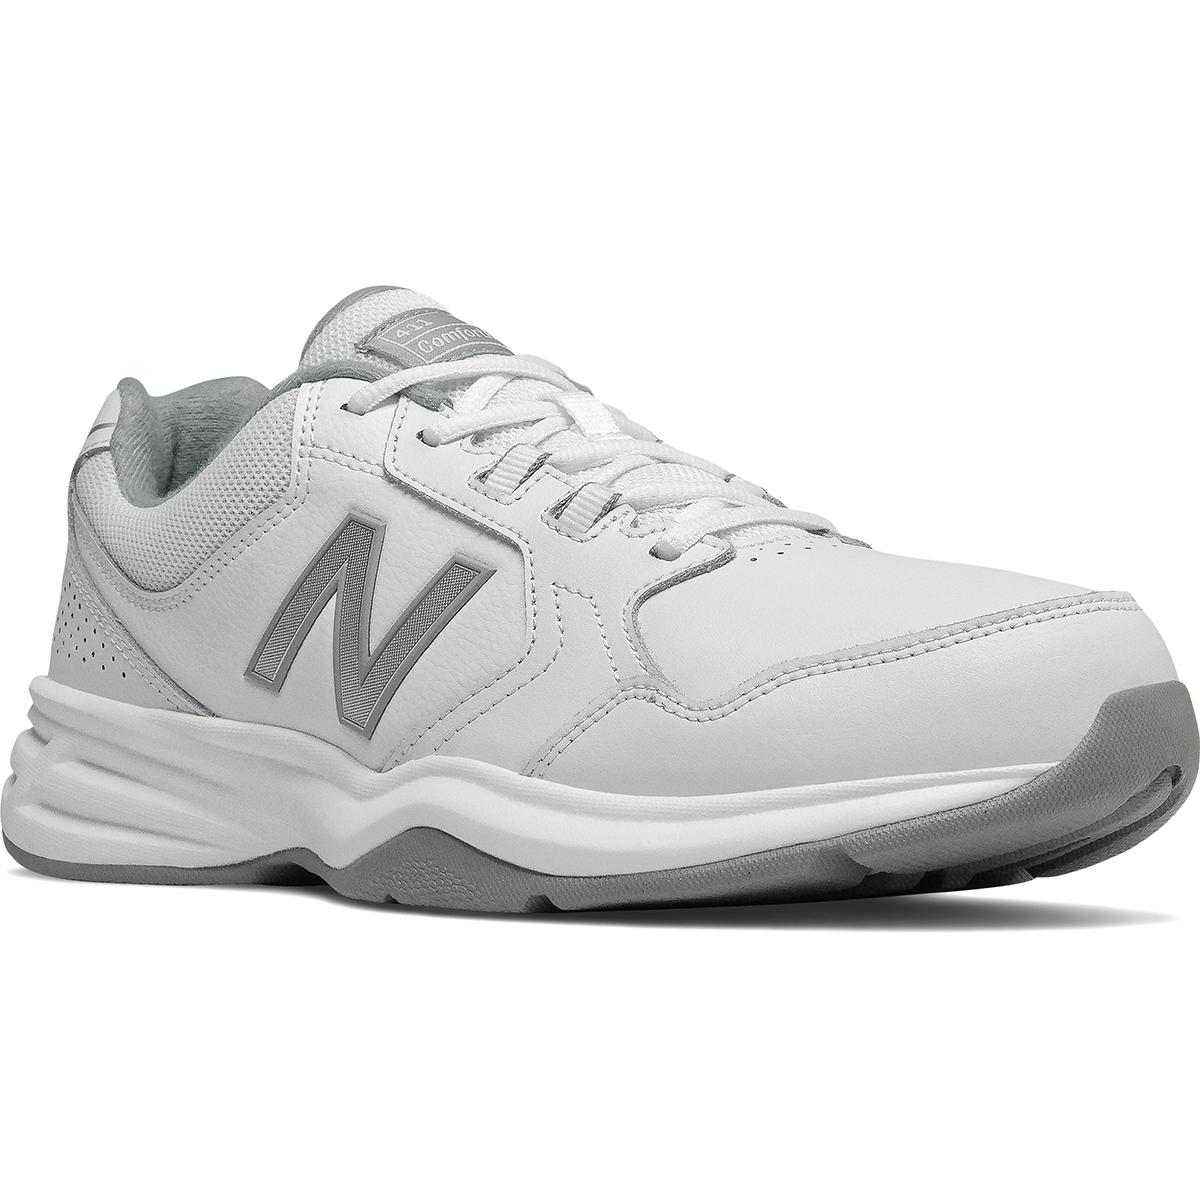 New Balance Men's 411 Walking Shoes, Wide - White, 11.5